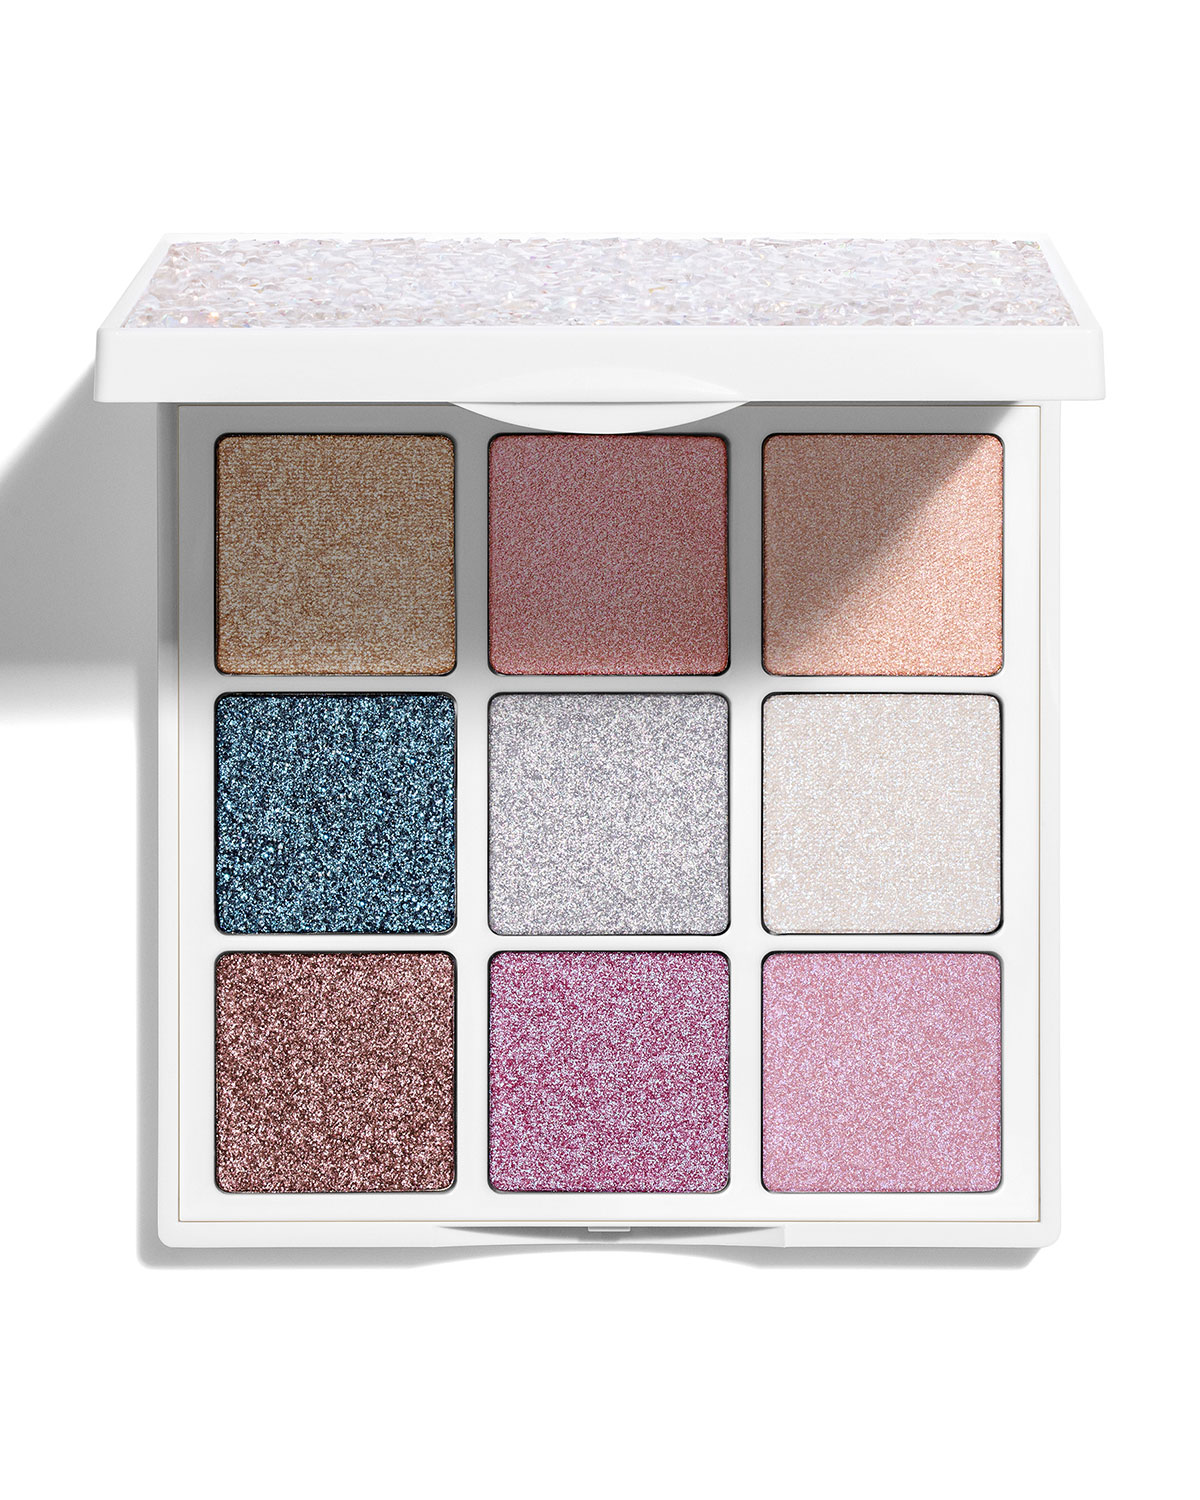 Chantecaille POLAR ICE EYESHADOW PALETTE